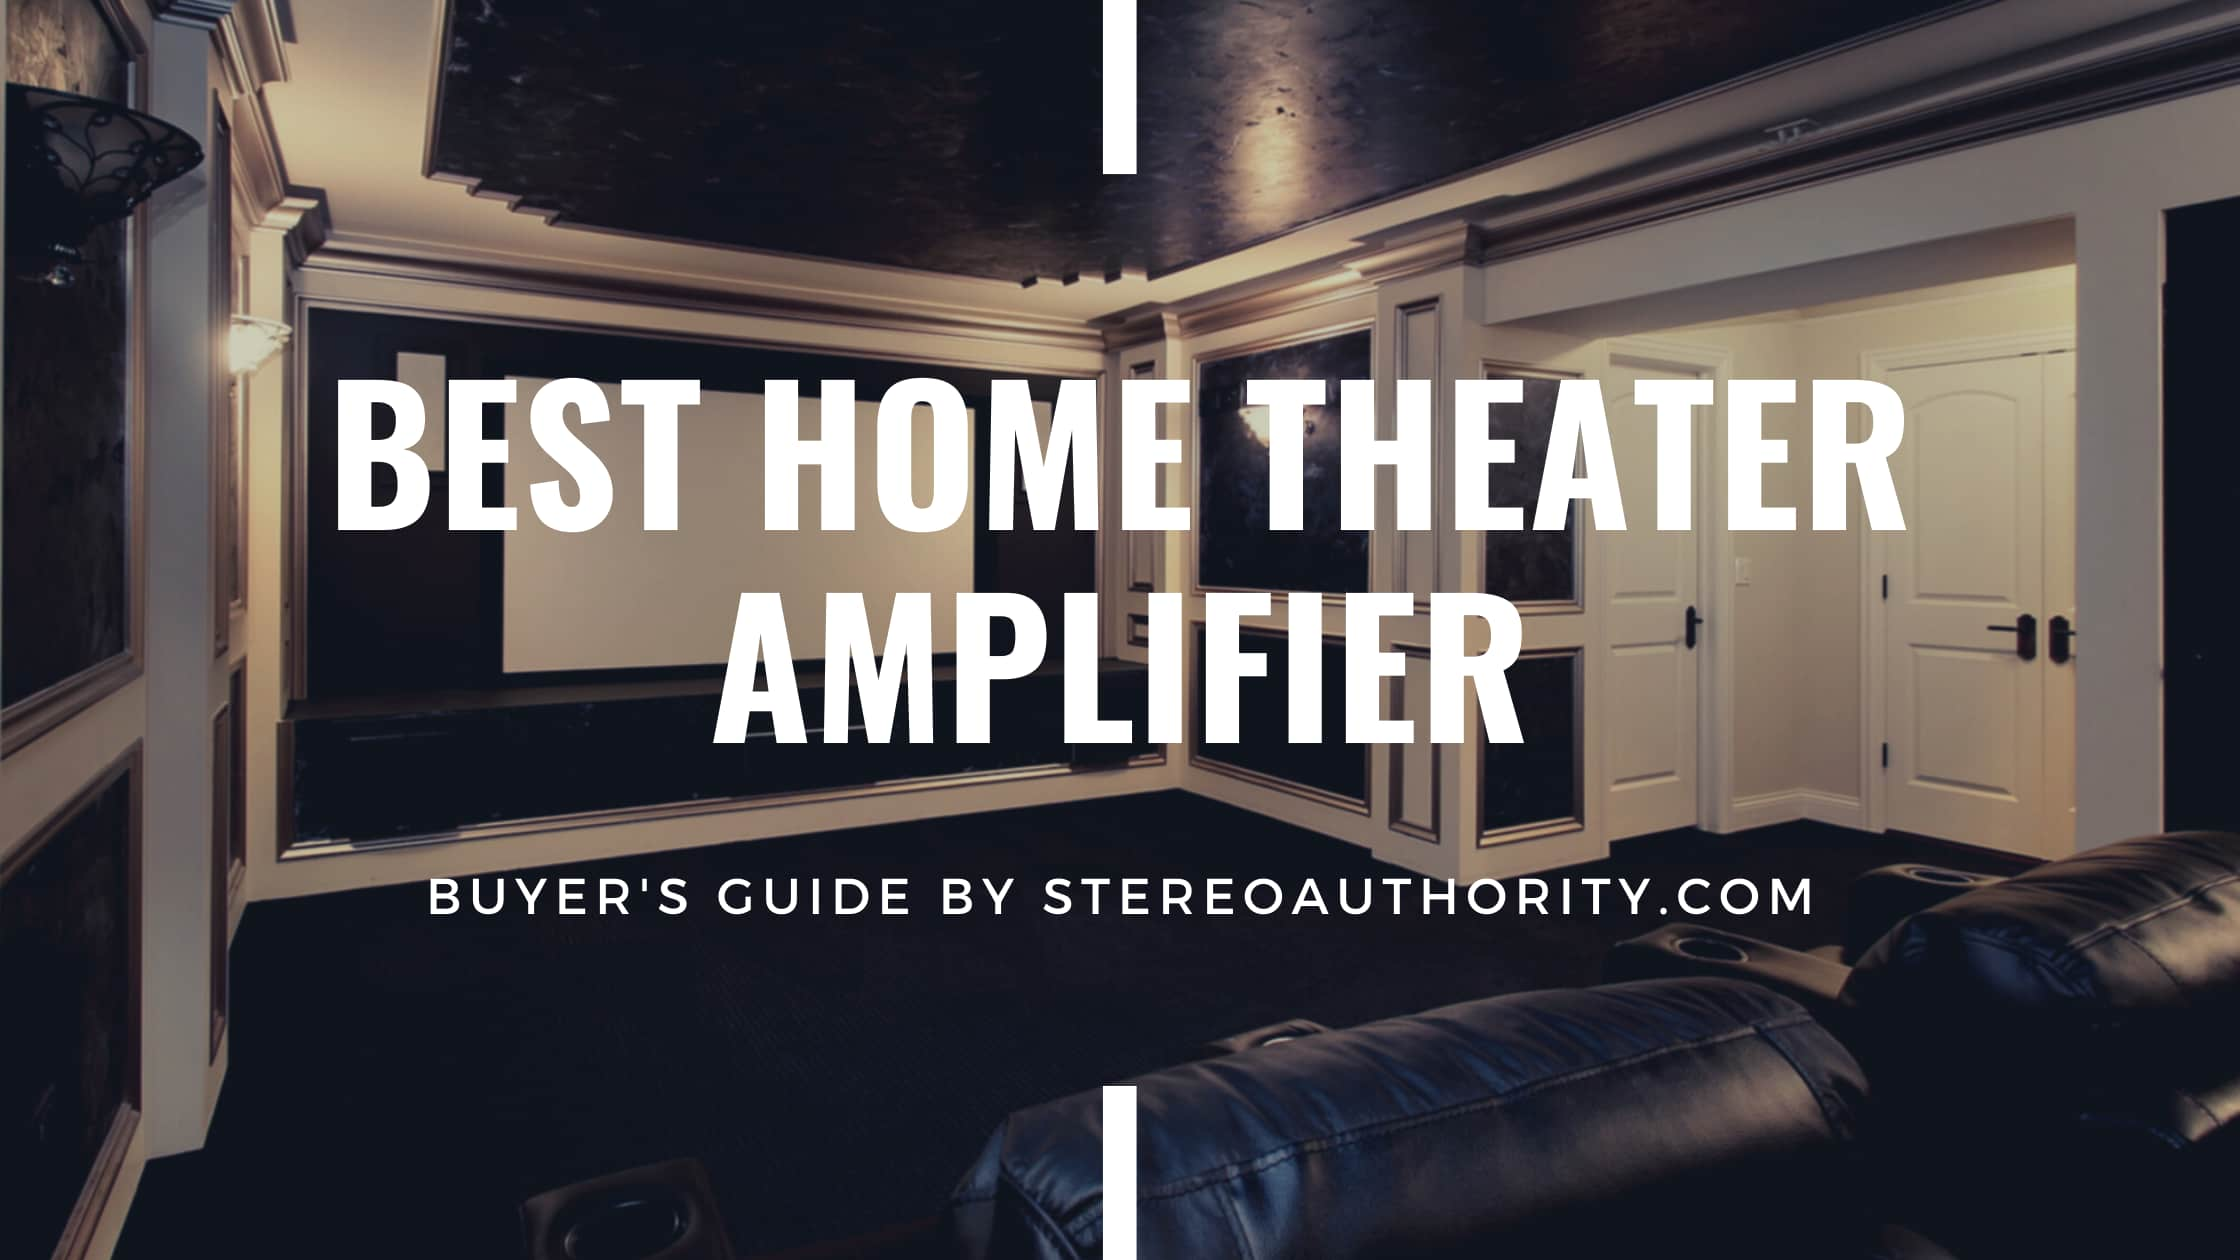 Best Home Theater Amplifier